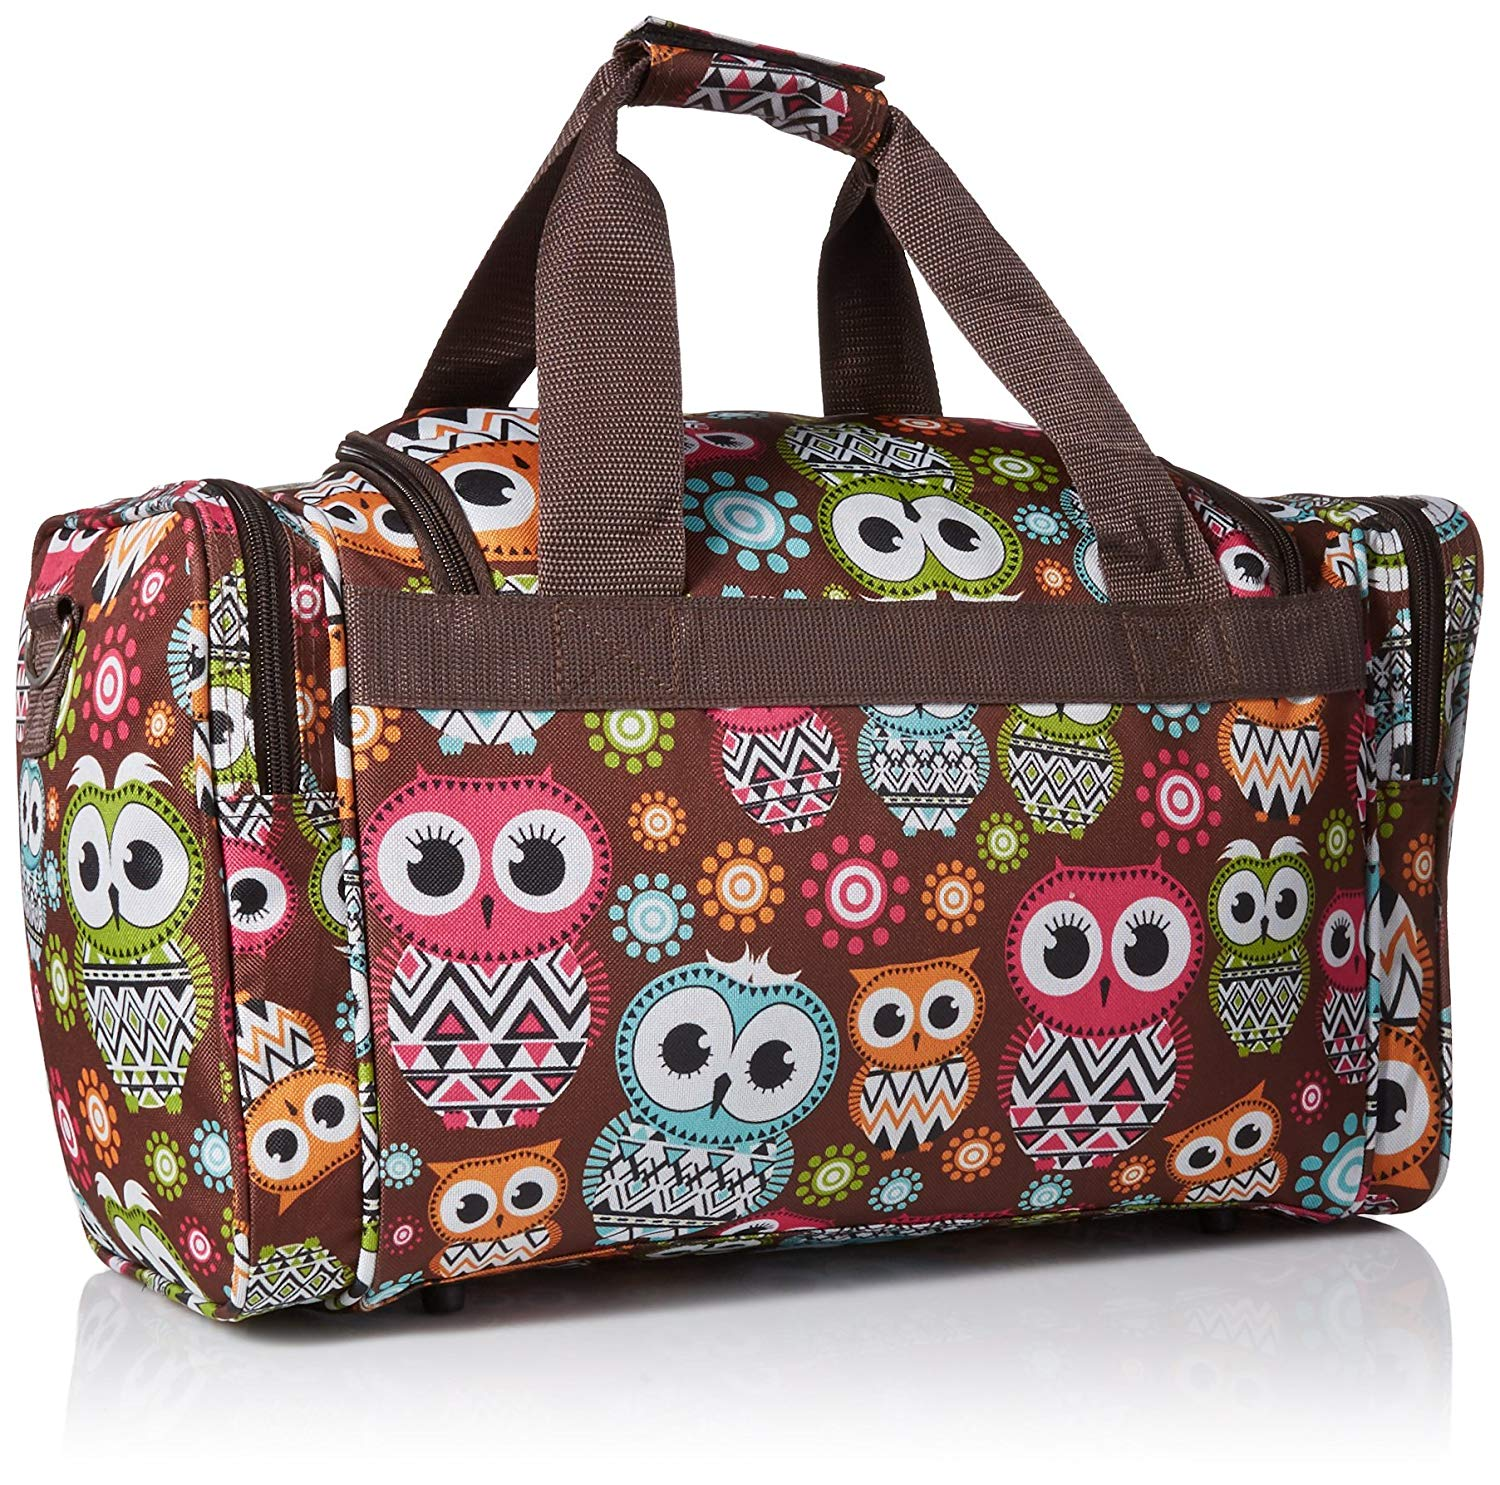 c69a9584b400 Rockland 19 Inch Tote Bag, Owl, One Size